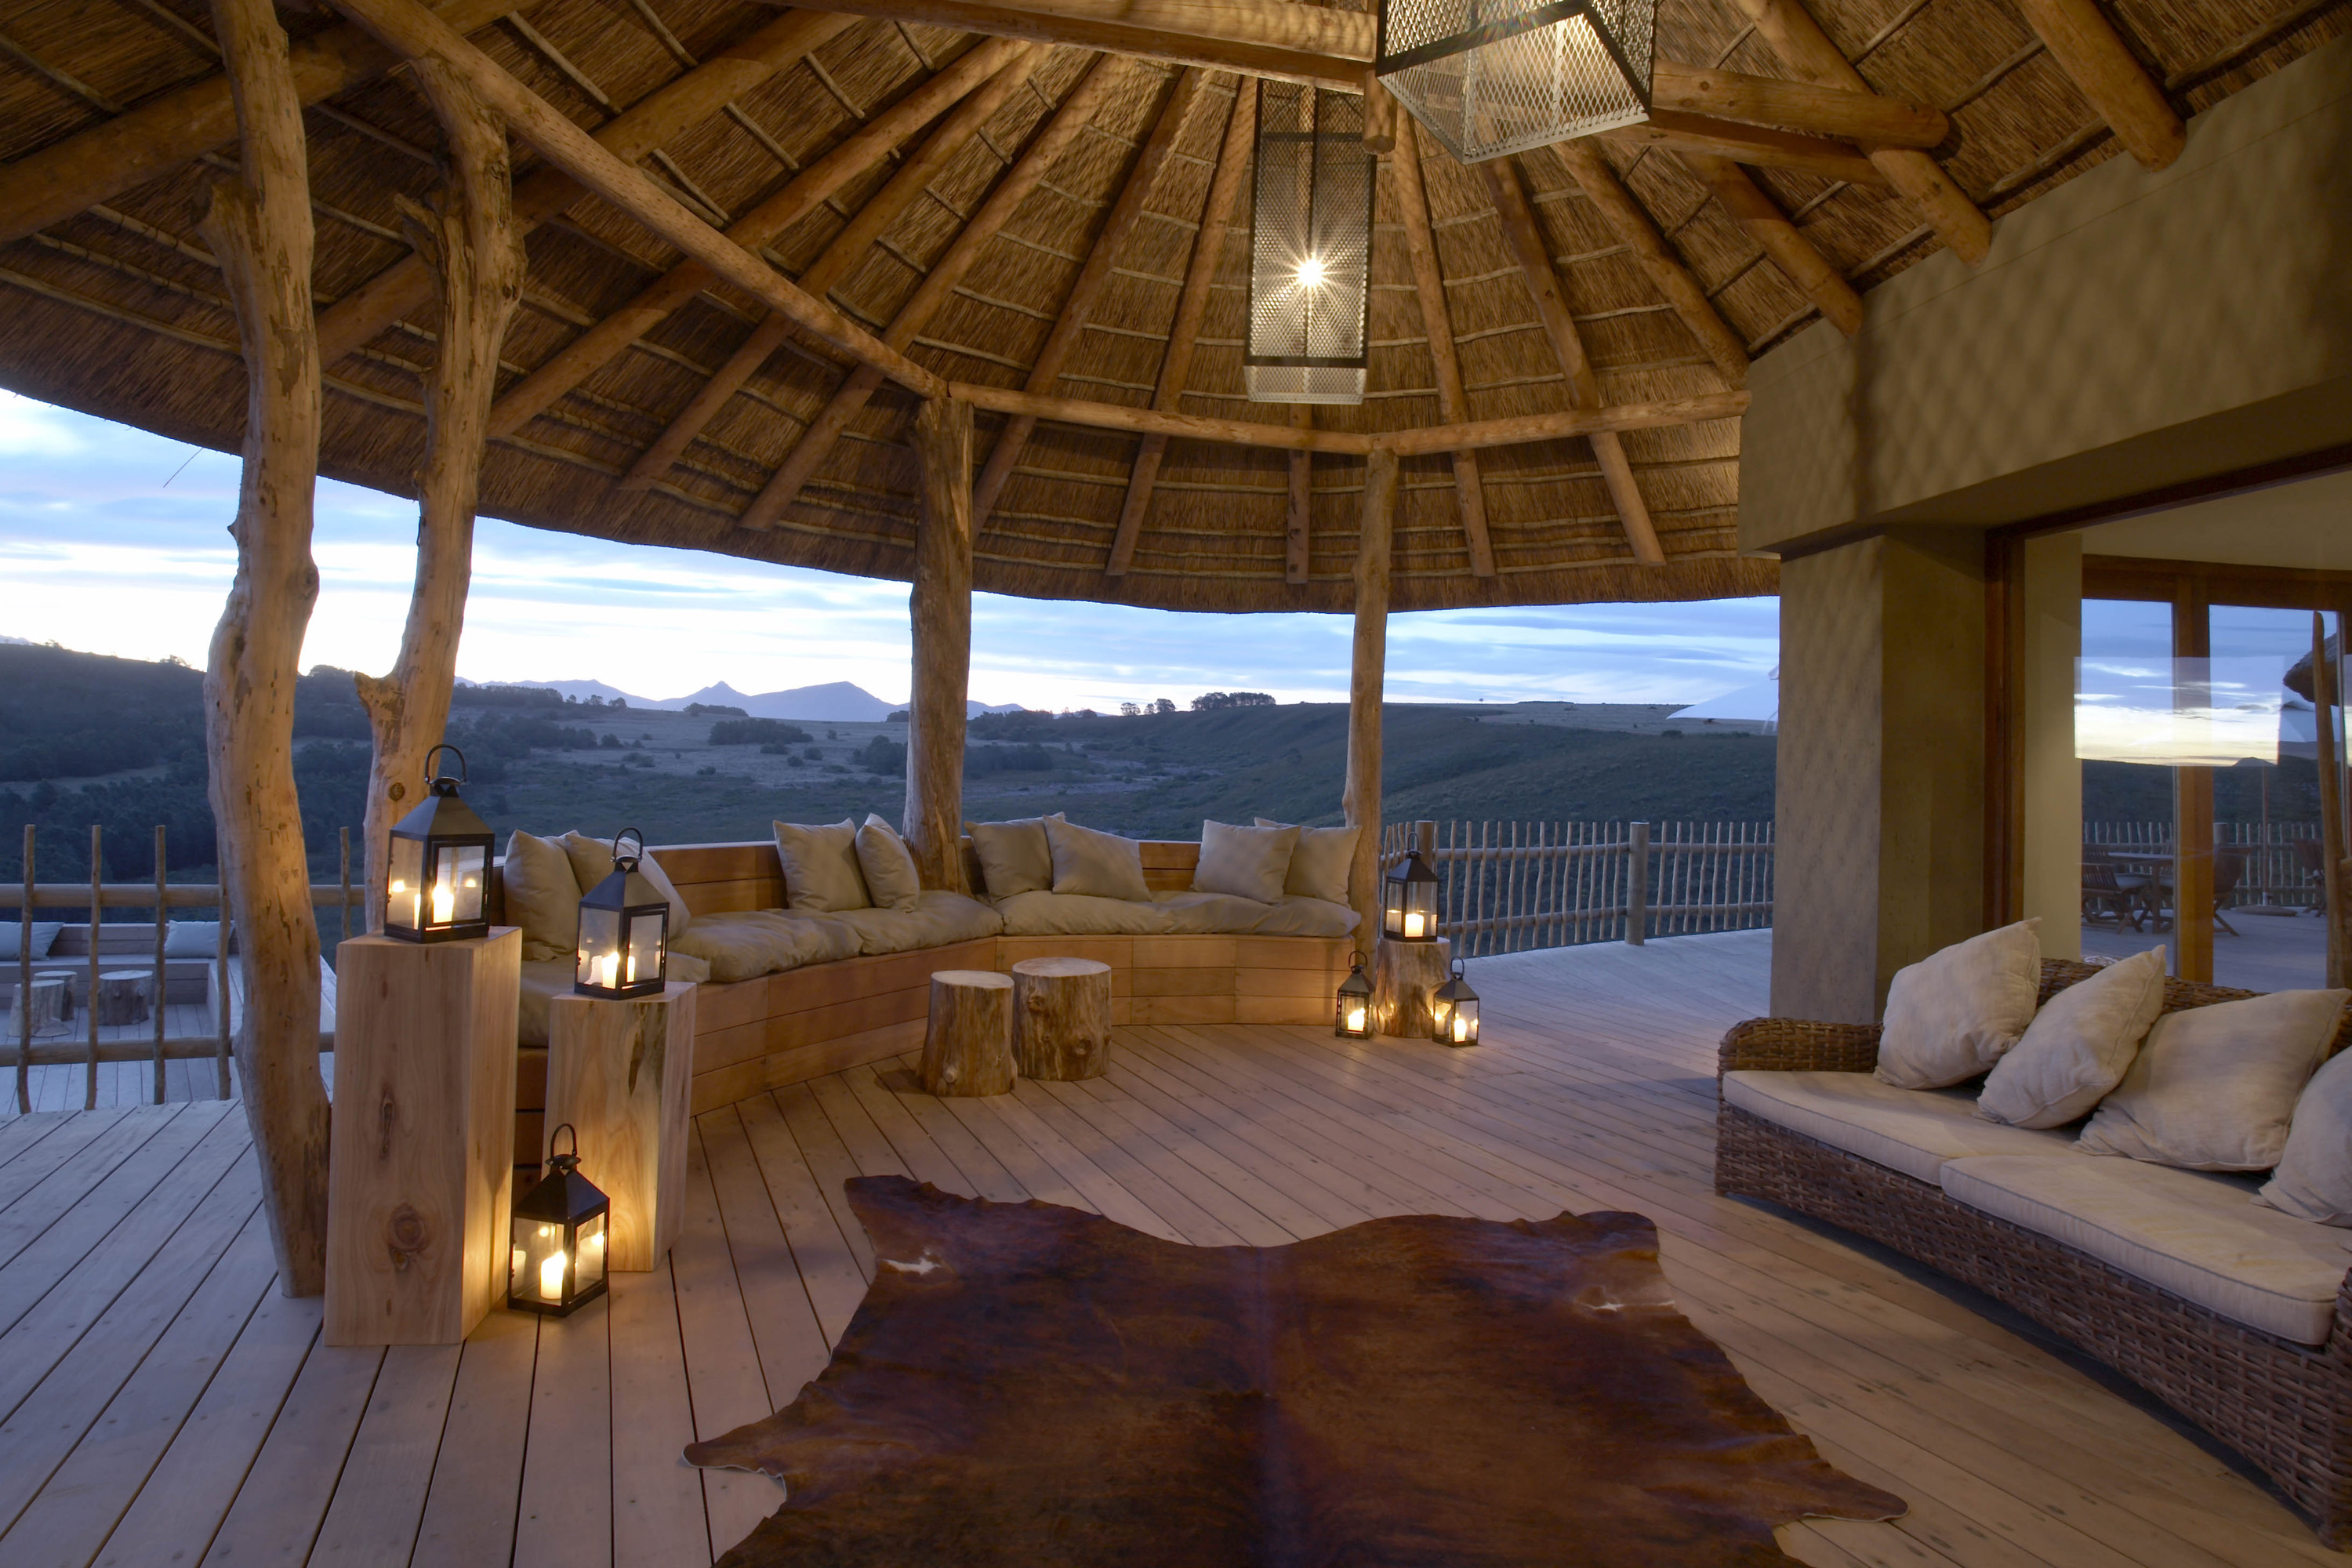 Gondwana Tent Ex&le creditPreferredHotelGroup Top 5 Gl&ing Hotels Around the World & Top 5 Glamping Hotels Around the World by Phaon Spurlock | Details ...